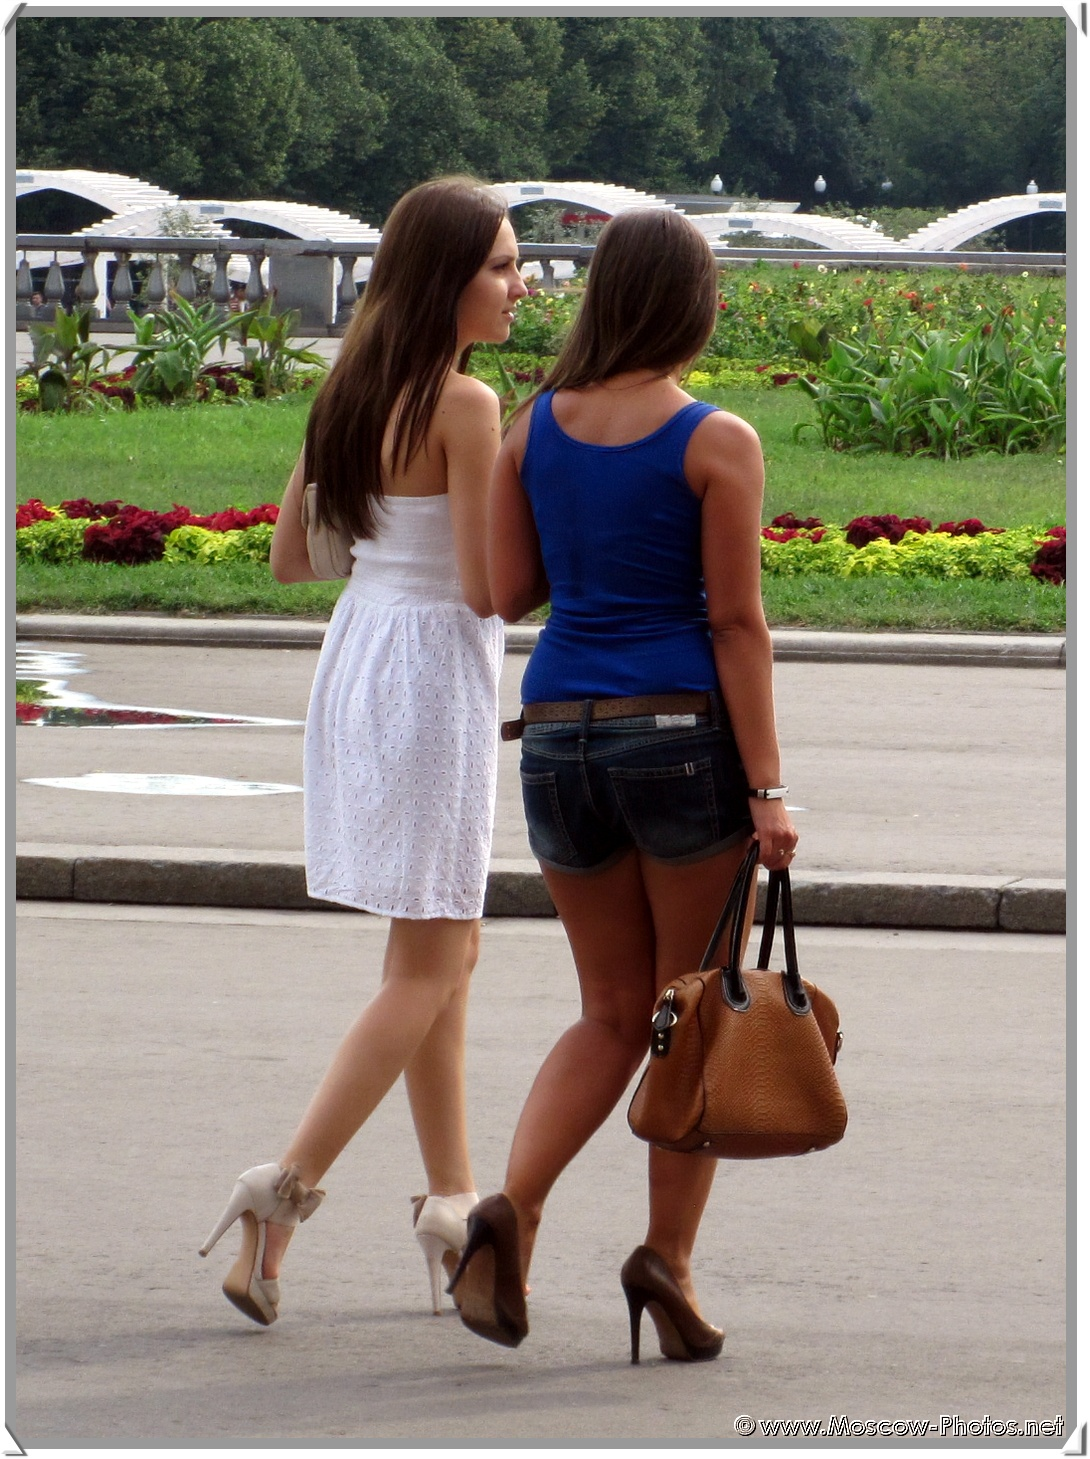 Sexy Russian Girls on the Moscow Street